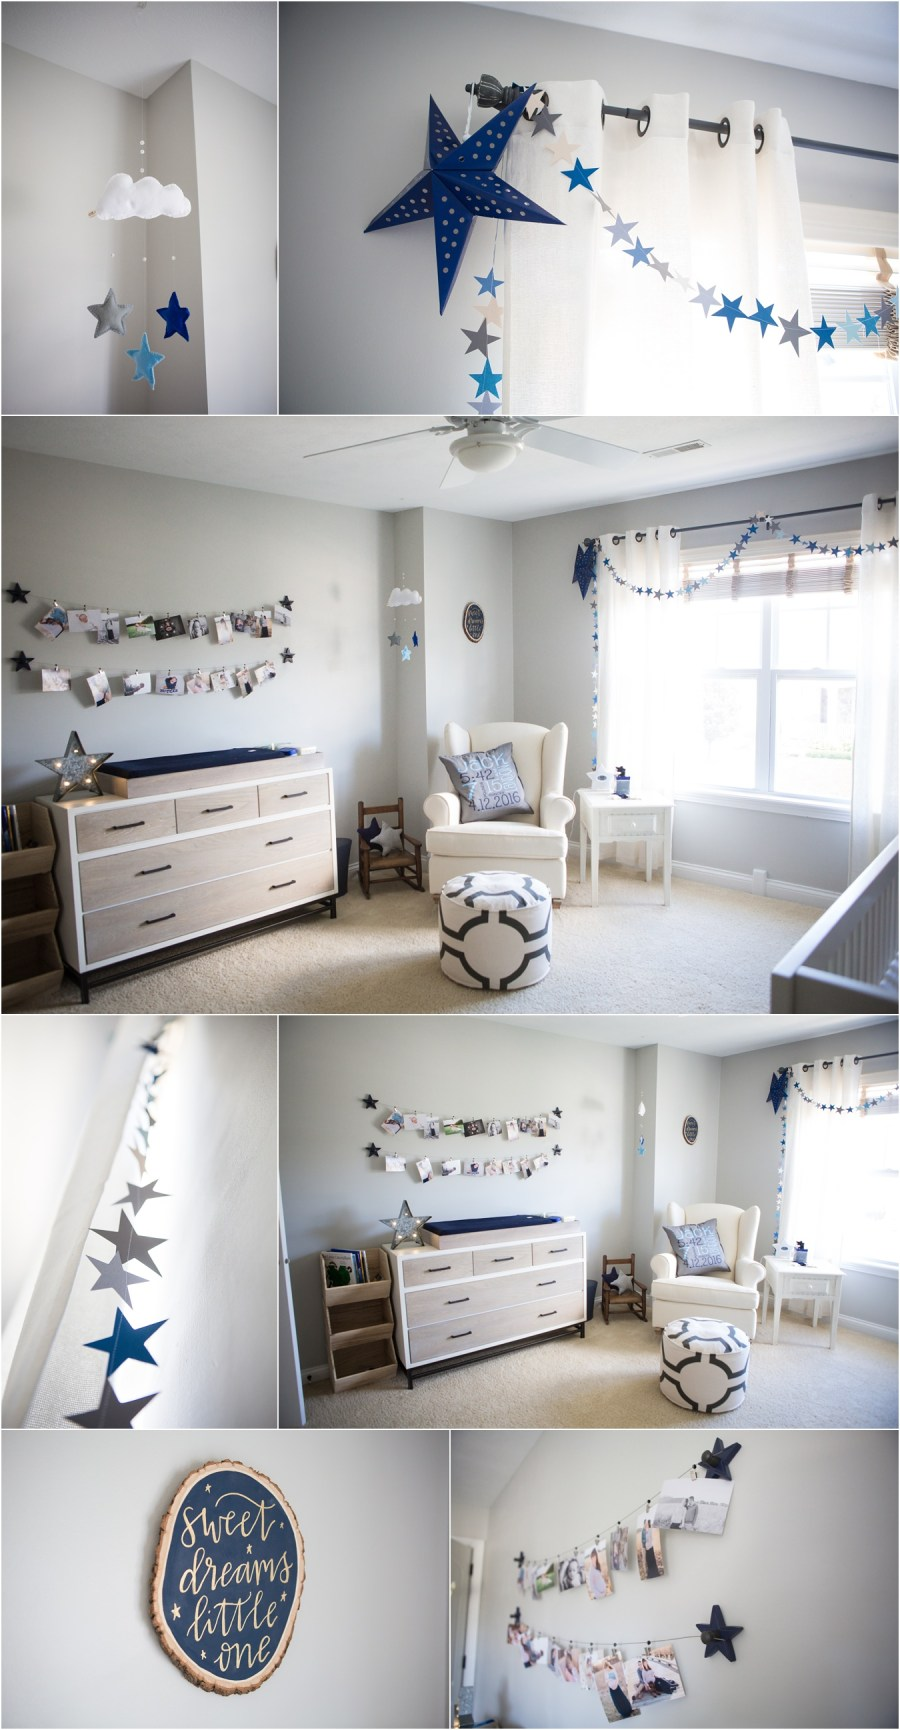 Repose Gray by Sherwin Williams painted nursery - star and moon themed nursery